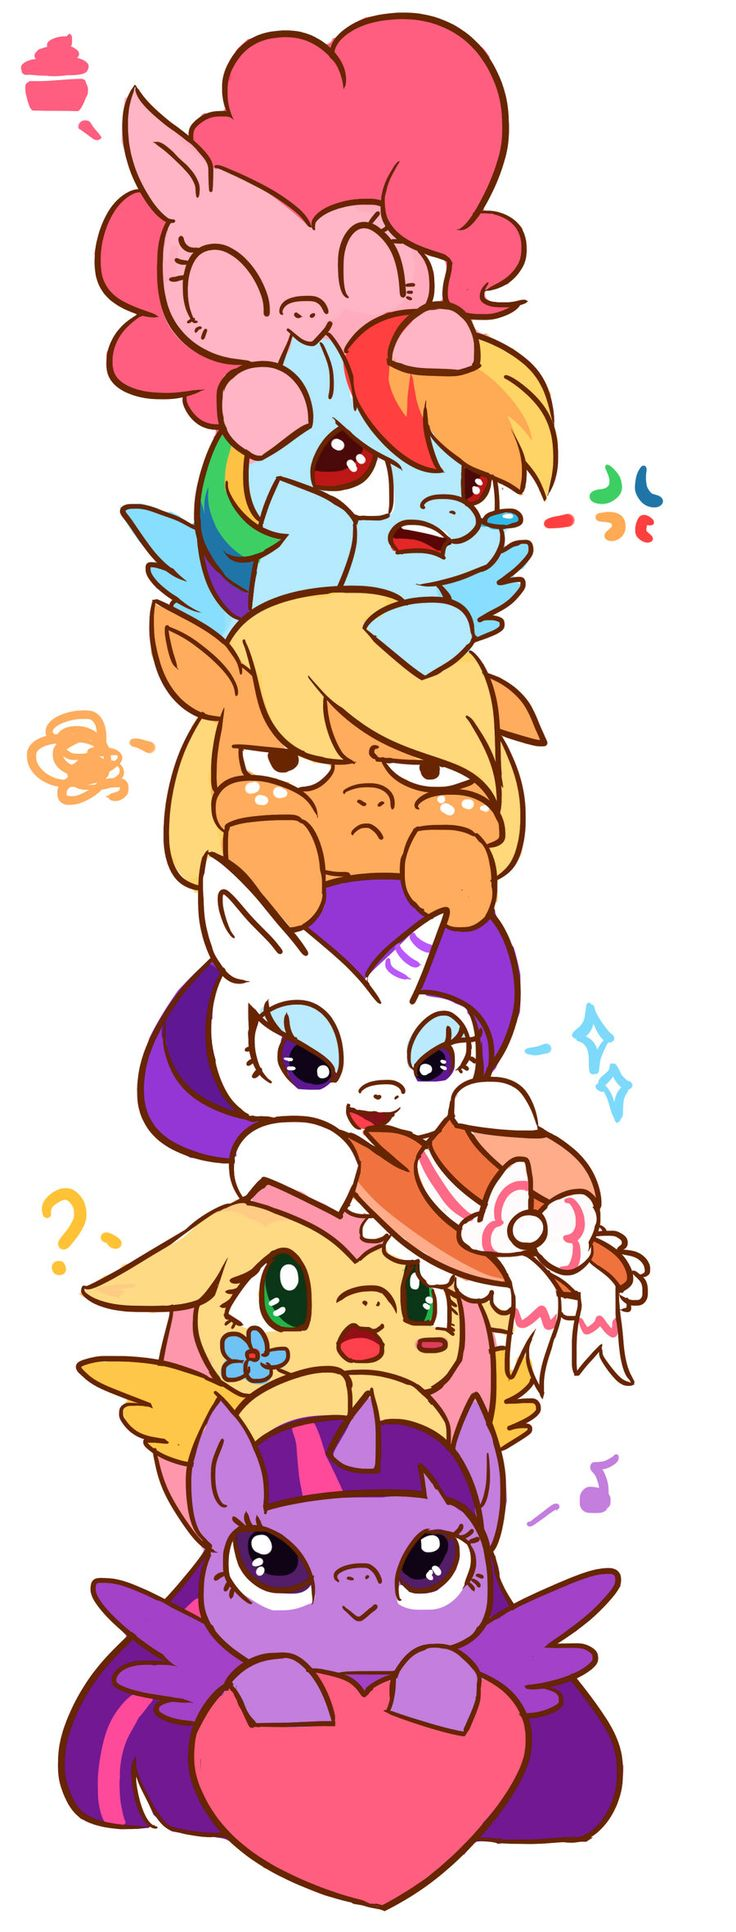 #833736 - applejack, applejack is not amused, artist:kongyi, chibi, cute, ear nibble, fluttershy, hat, mane six, pinkie pie, princess twilight, rainbow dash, rarity, safe, tower of pony, twilight sparkle - Derpibooru - My Little Pony: Friendship is Magic Imageboard